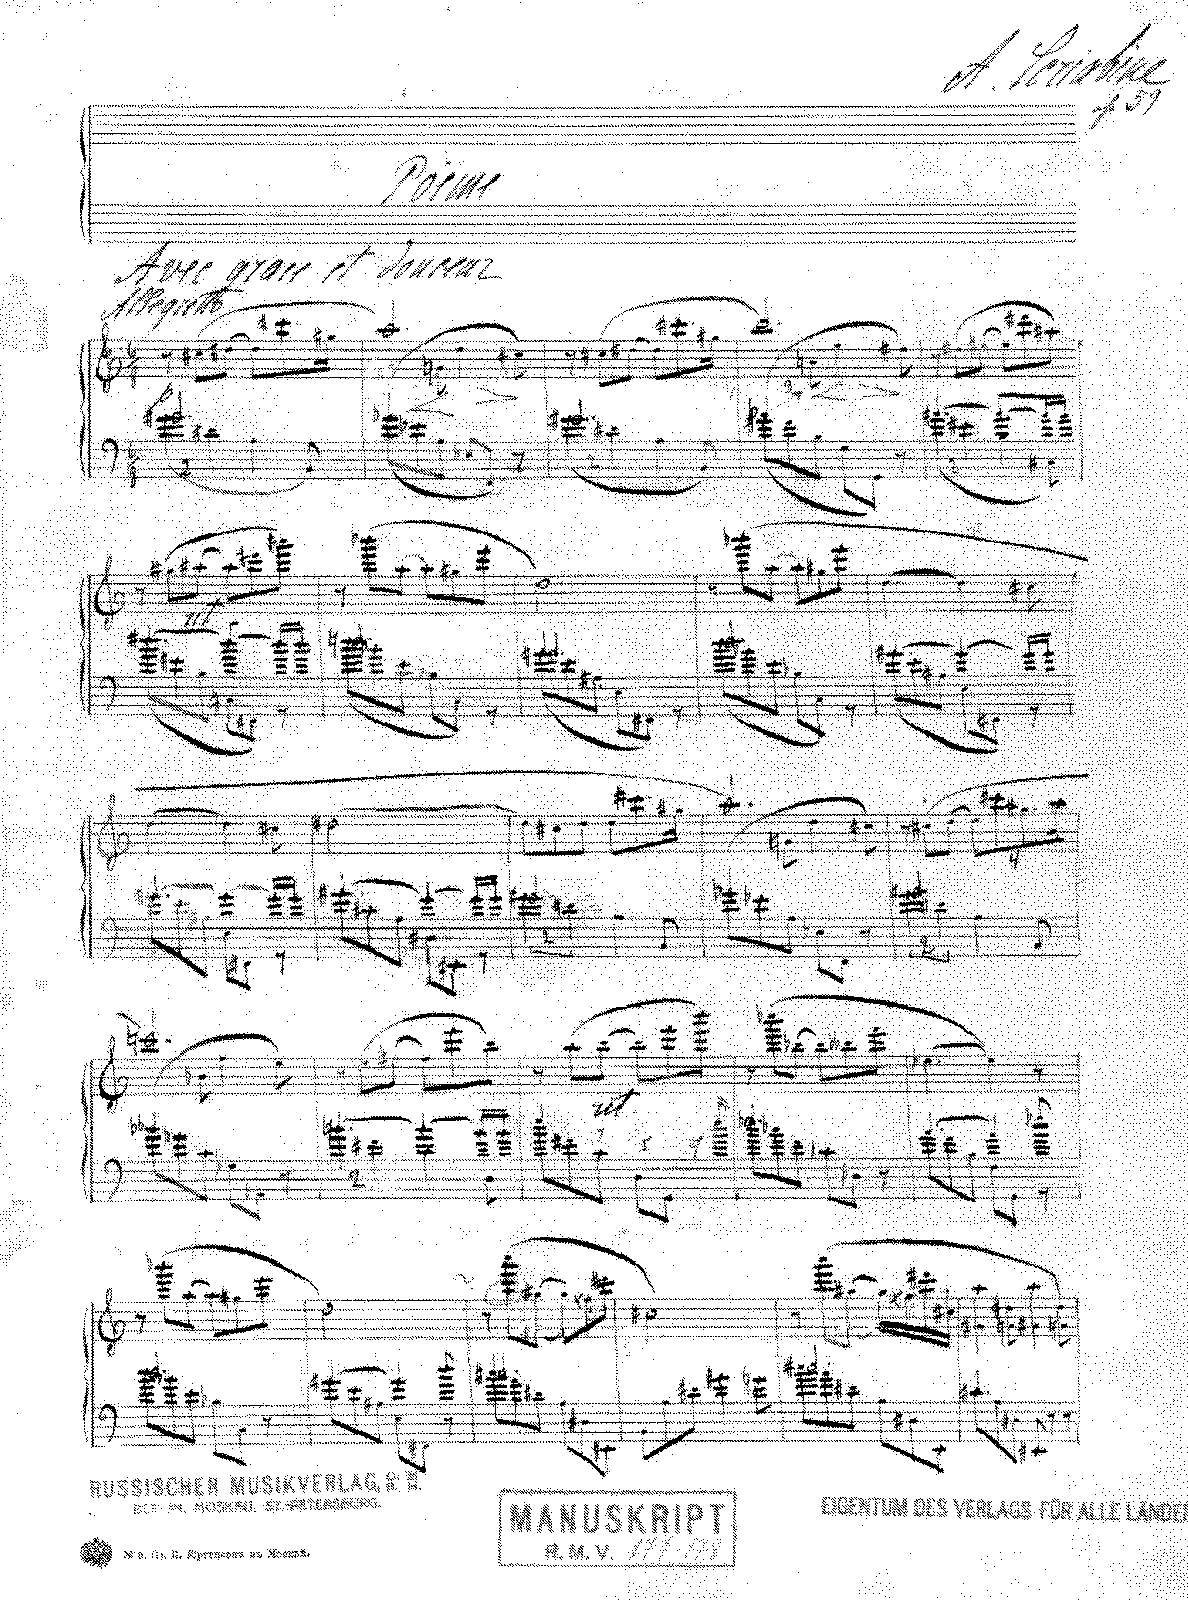 PMLP122346-Scriabin- op 59 n°1-manuscrit.pdf